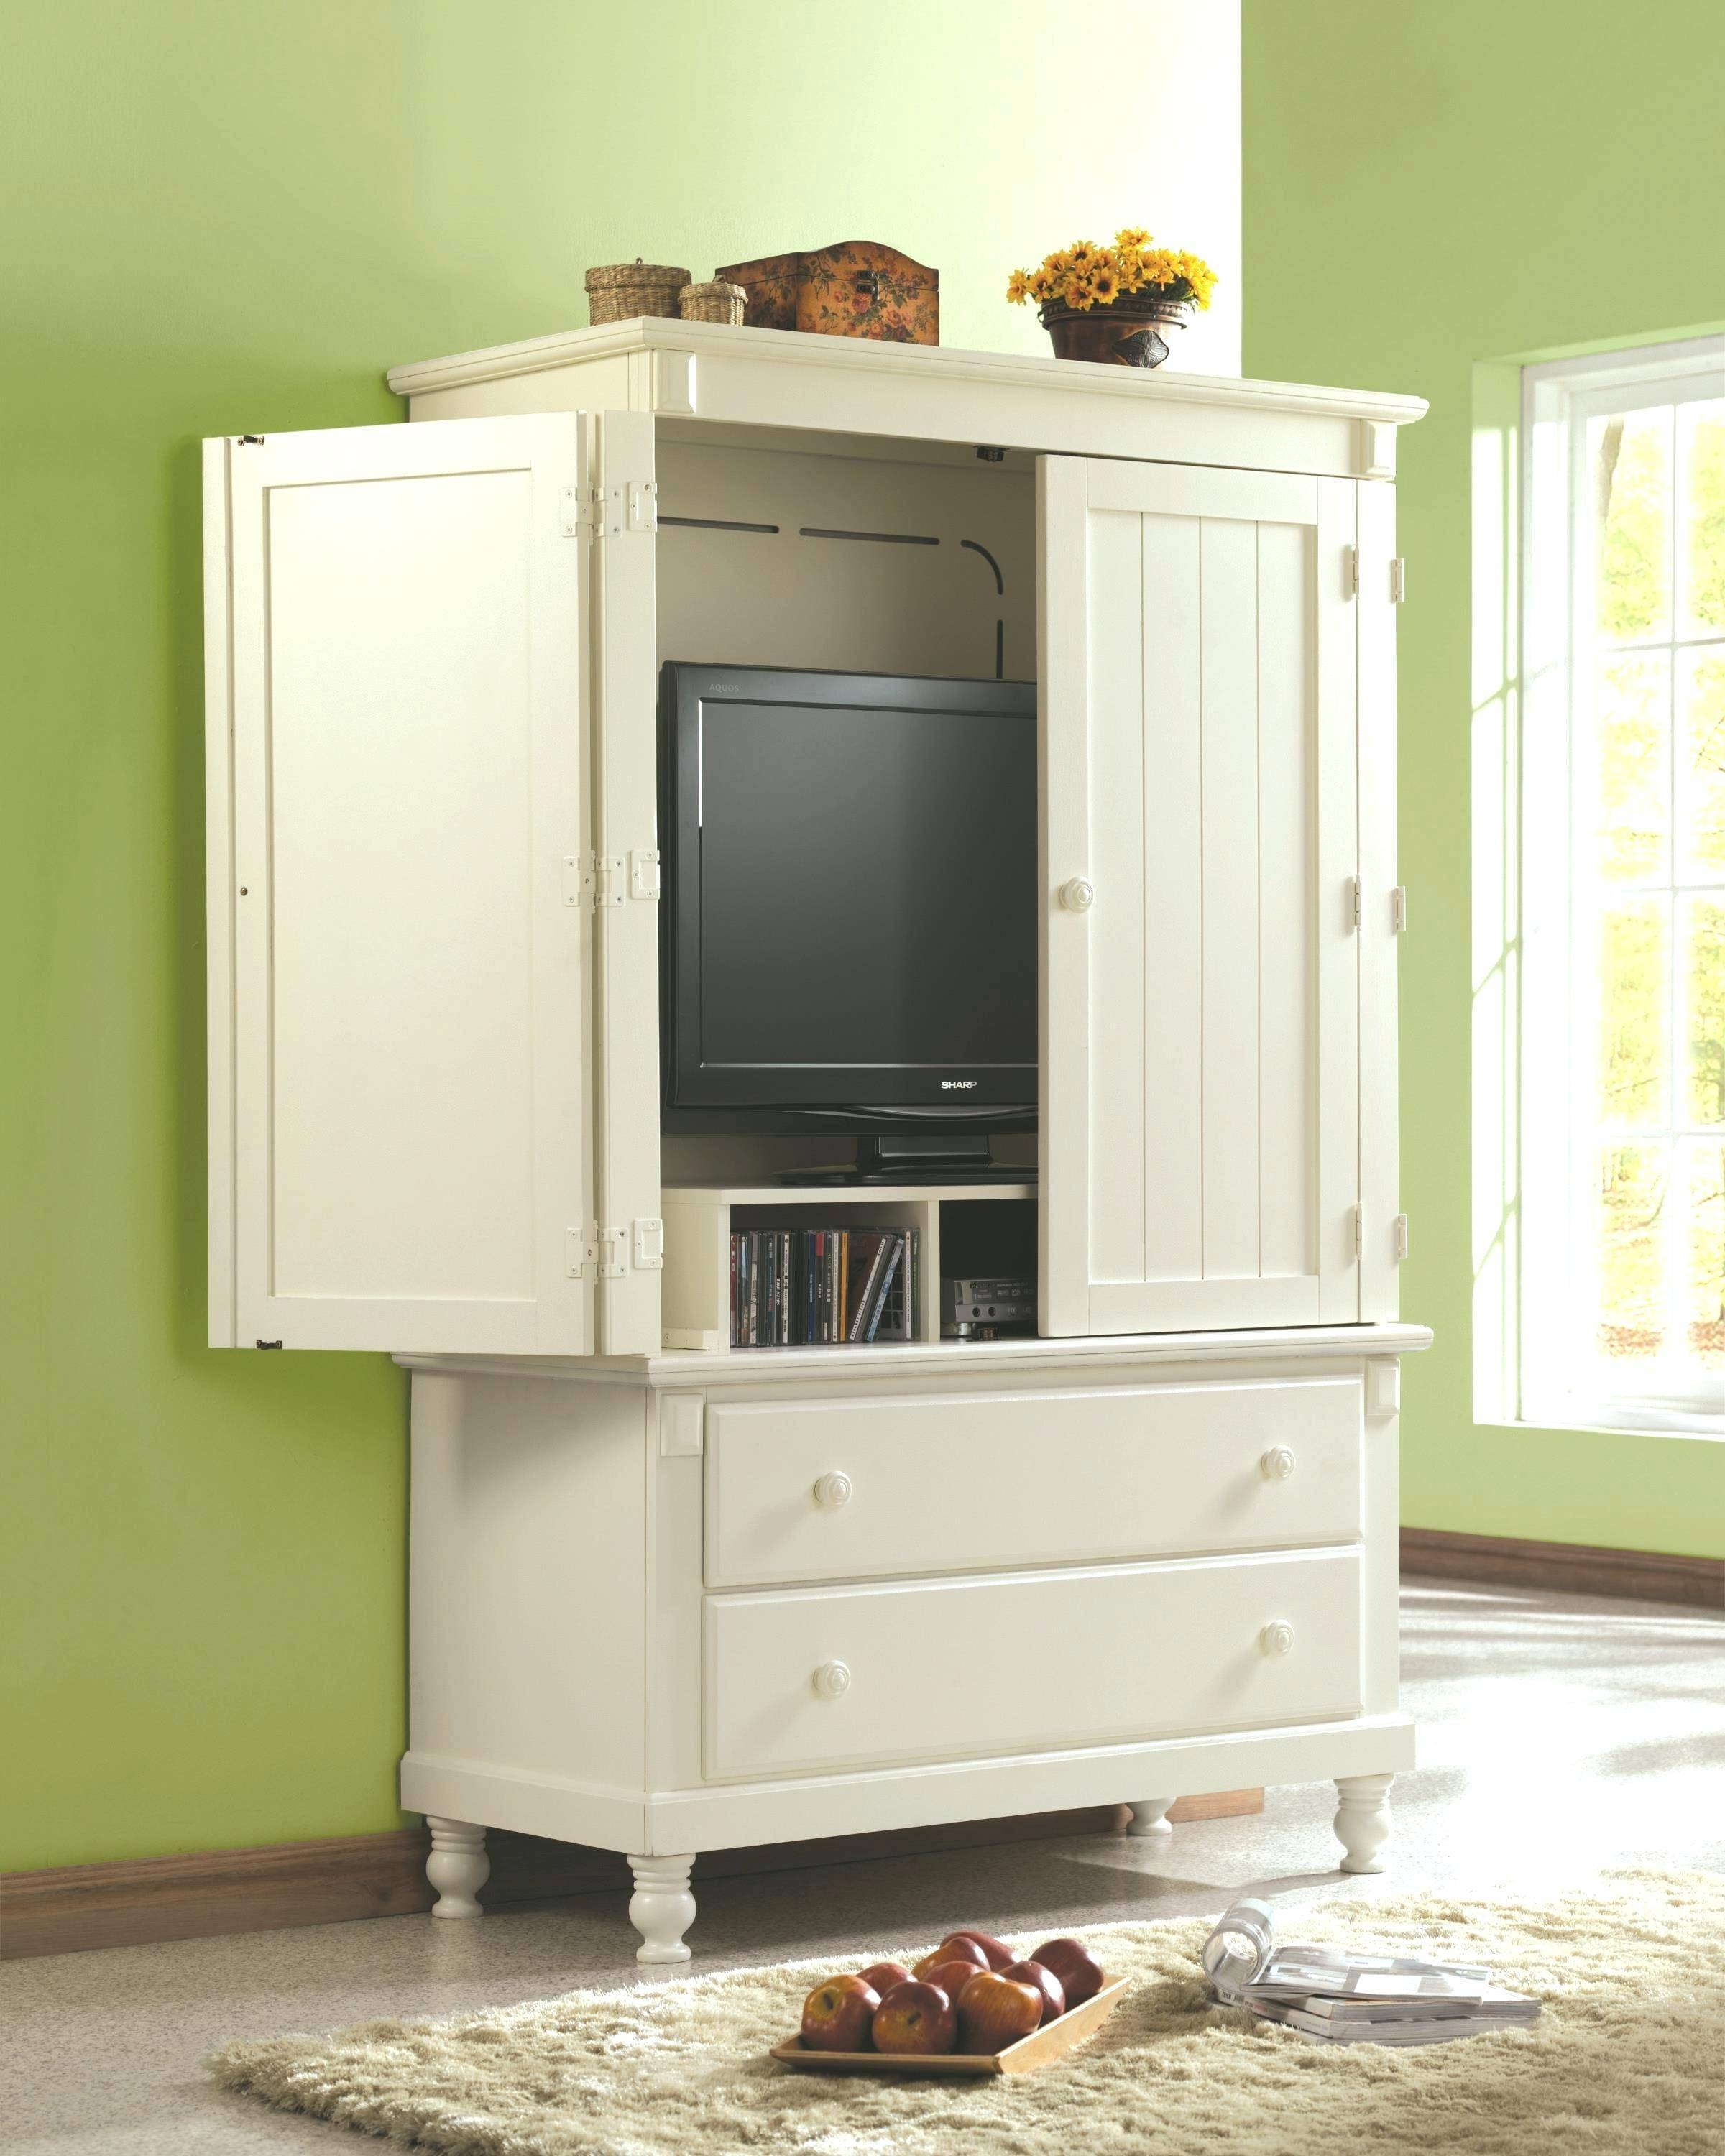 Best 15 Of French Country Tv Cabinets